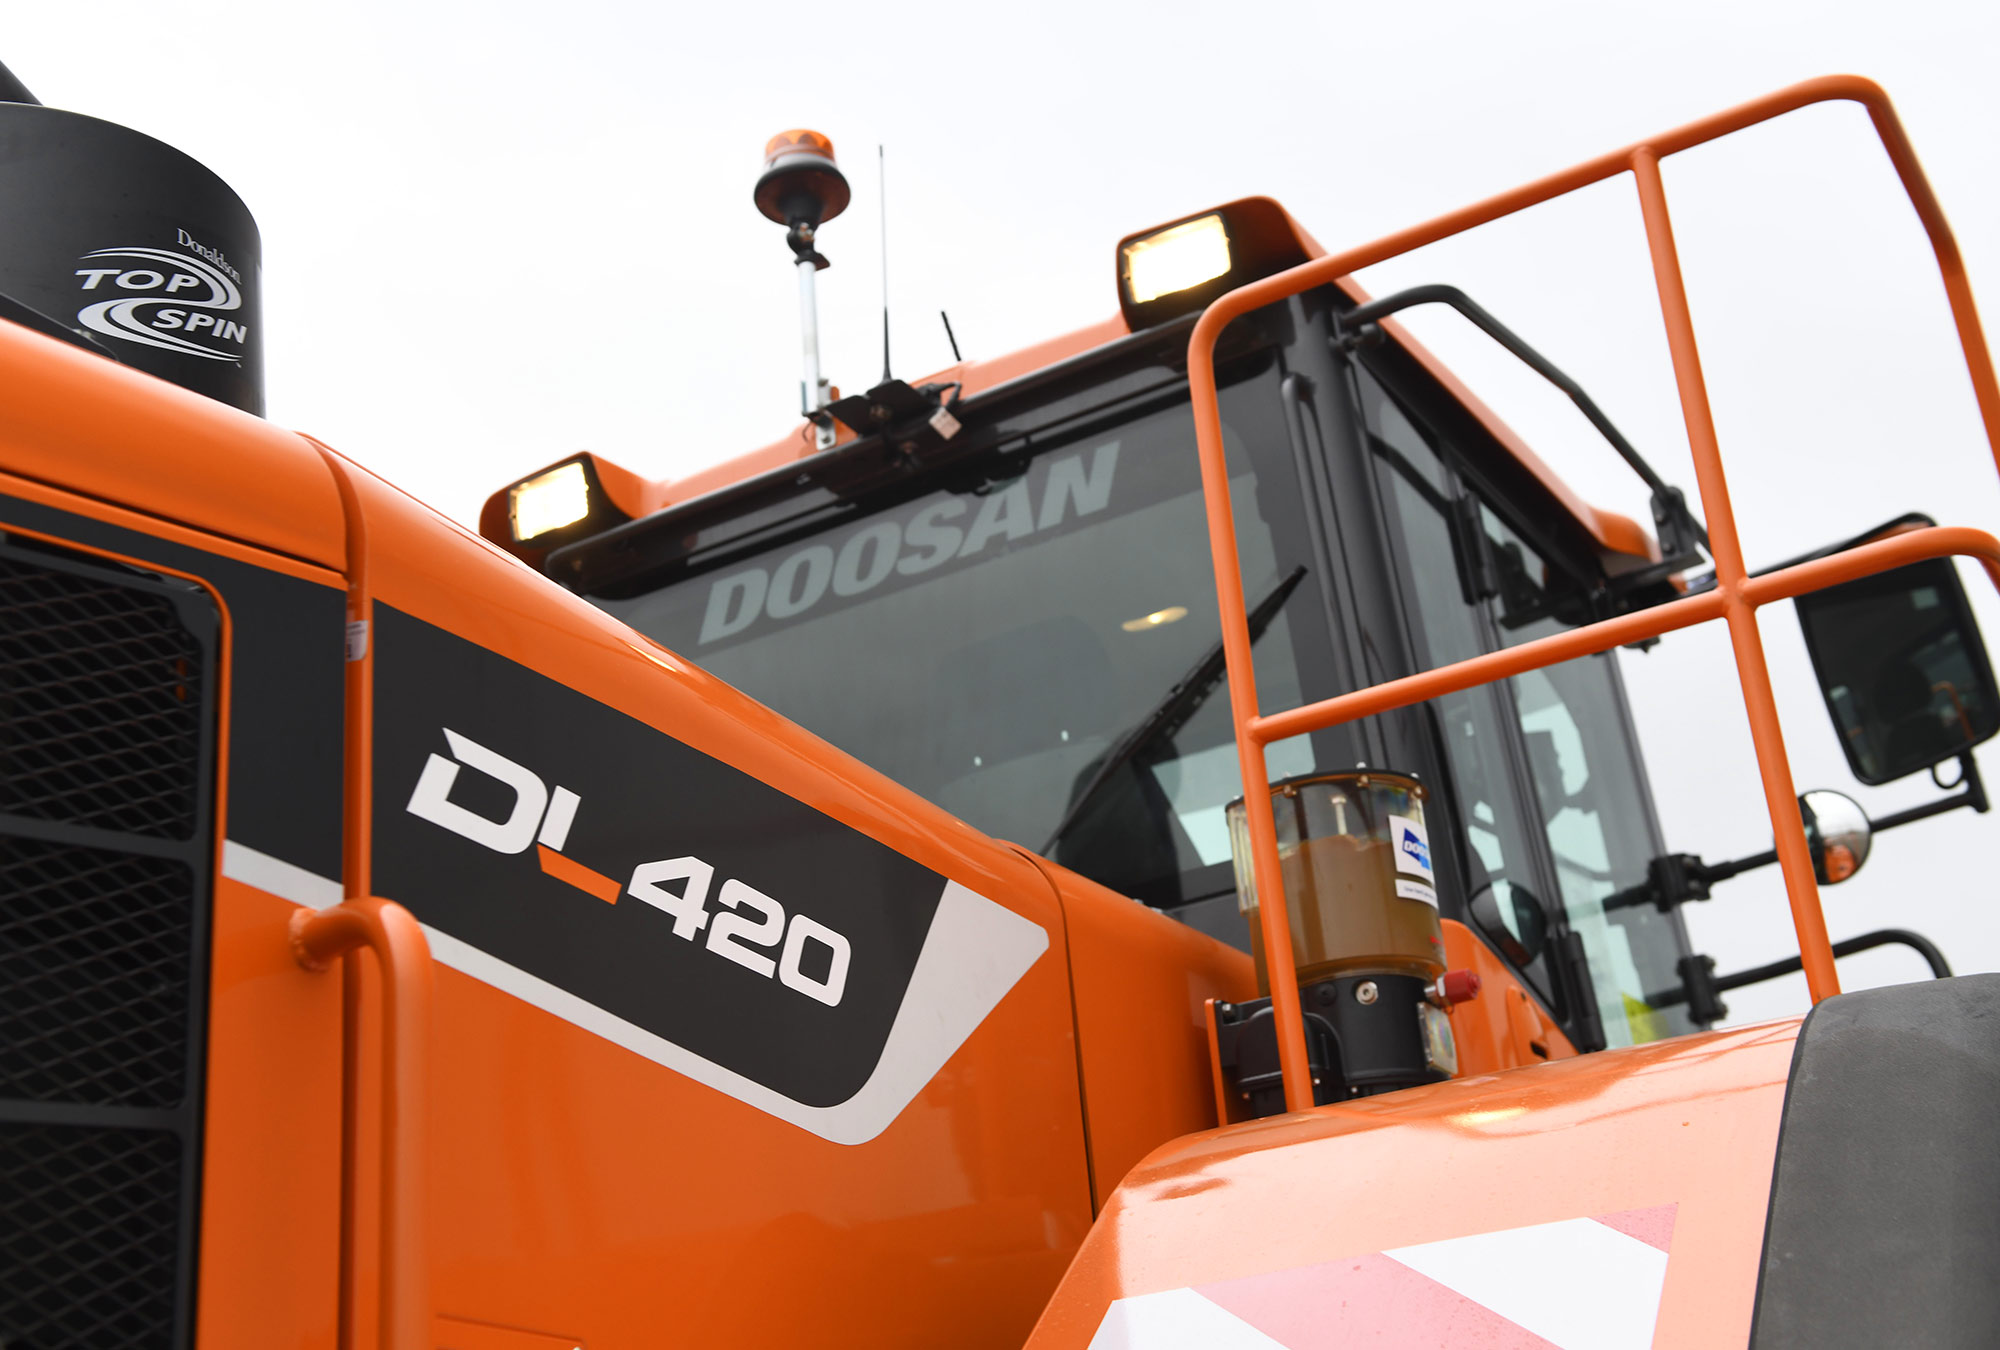 DL420-5 | Doosan Infracore Europe